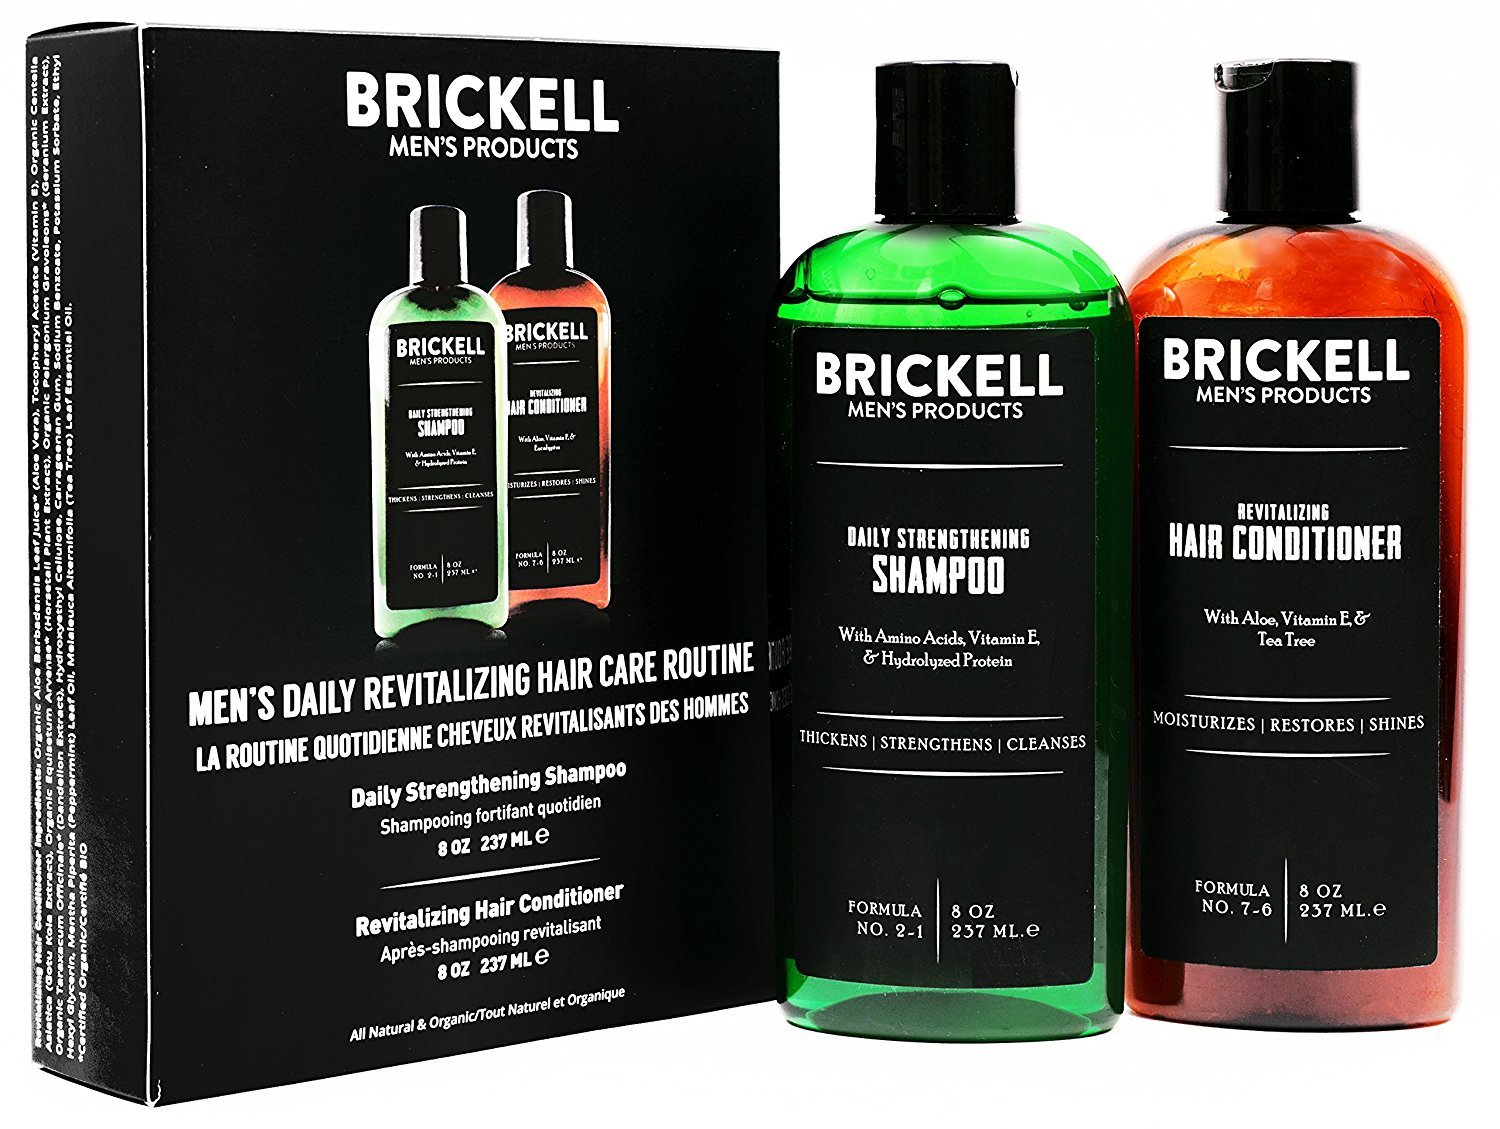 Brickell Men's Daily Revitalizing Hair Care Routine, Mint and Tea Tree Oil Shampoo, Strength and Volume Enhancing Conditioner, New Formula, Natural and Organic